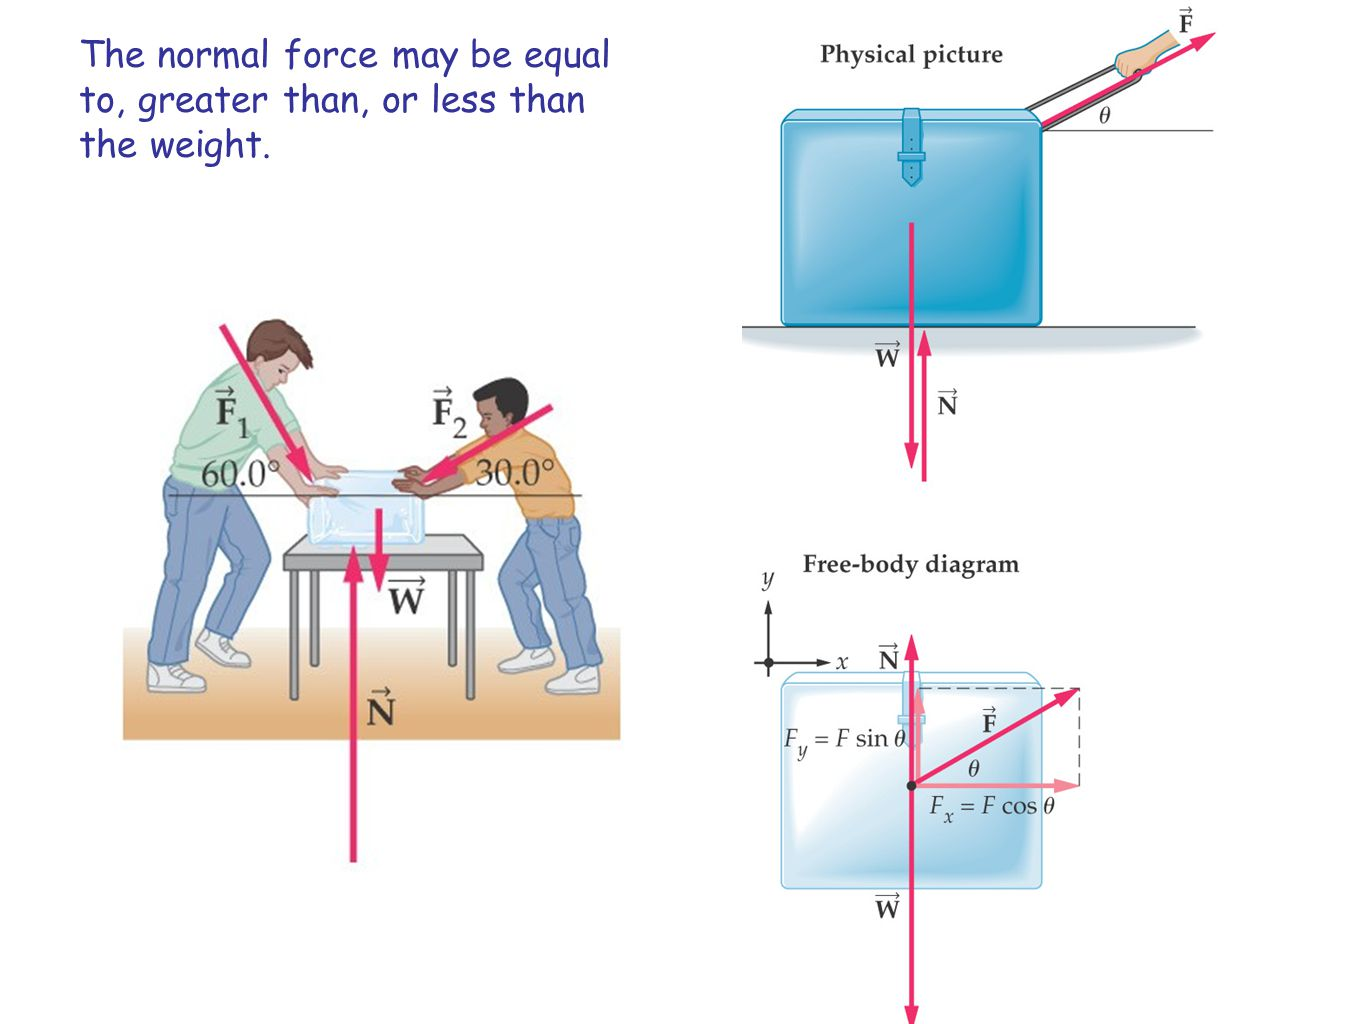 The normal force may be equal to, greater than, or less than the weight.